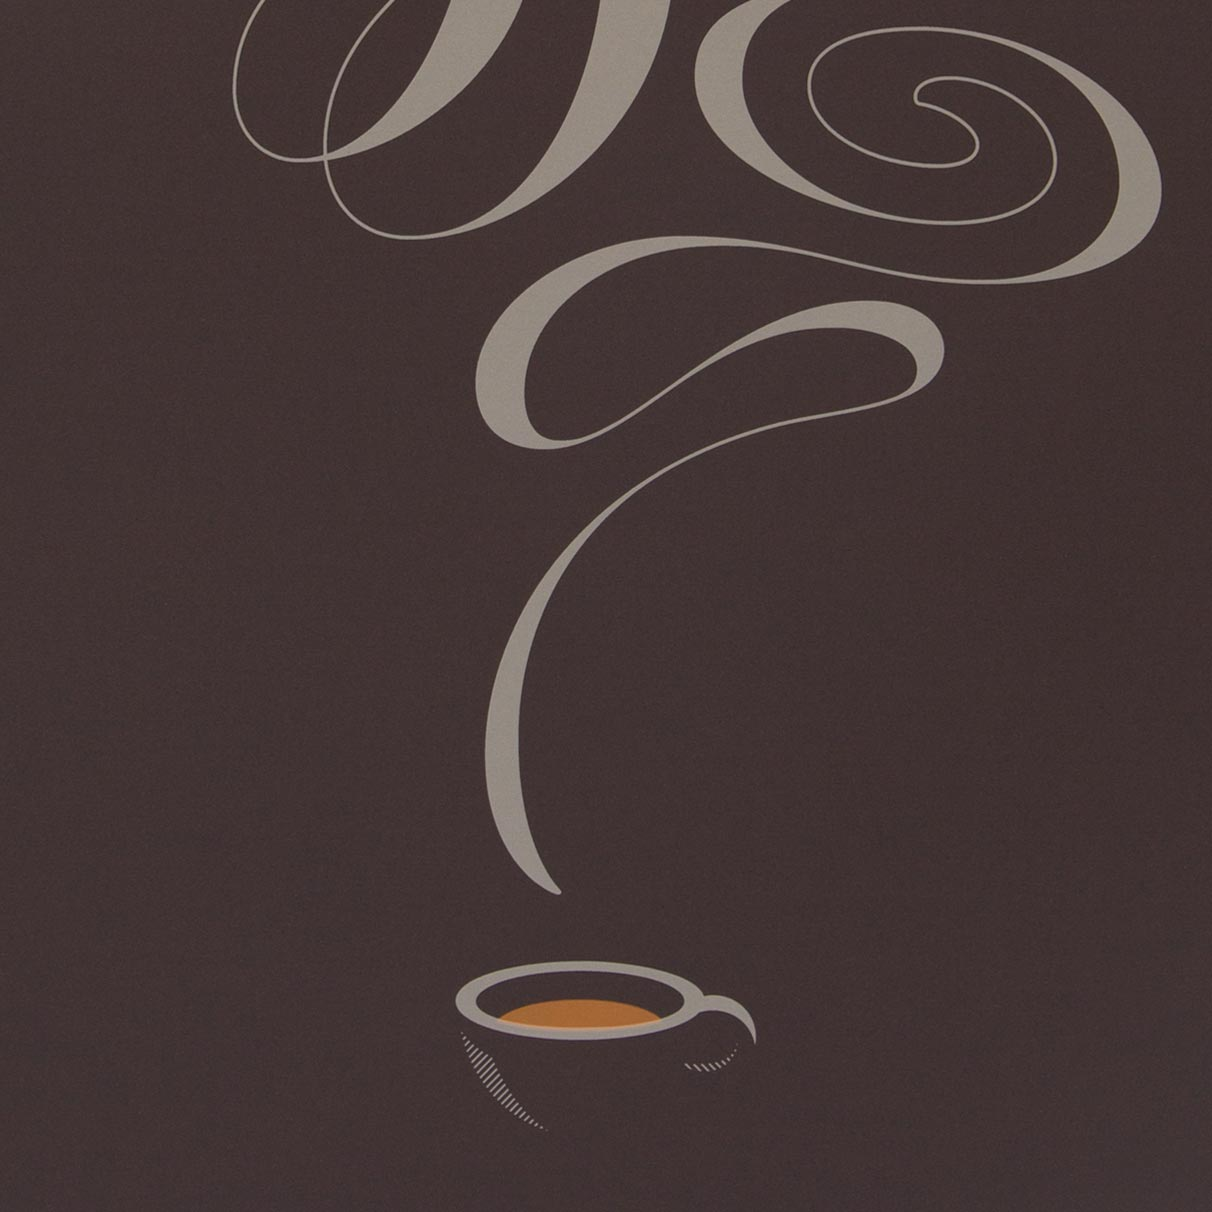 Coffee Lettering Screen Print by Dan Forster For The Lost Fox